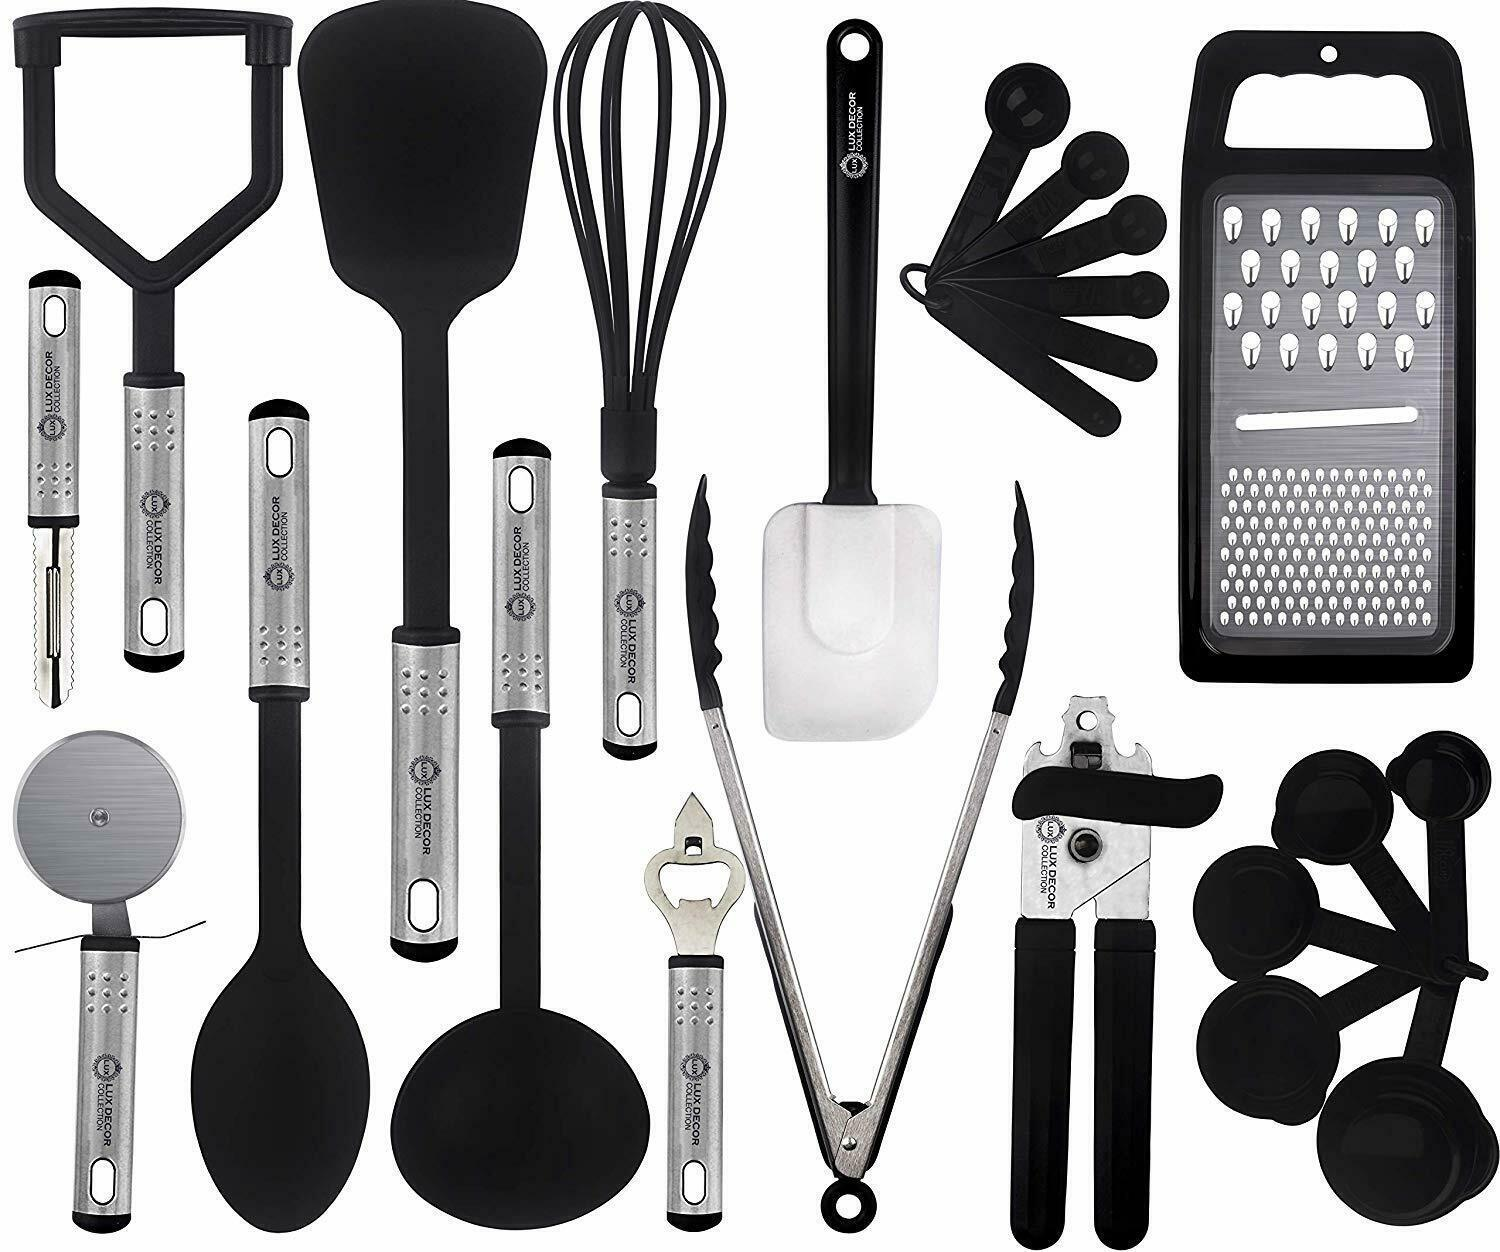 Kitchen Utensil Set 23 Stainless Steel Non Stick Cooking Bakeware Cookware